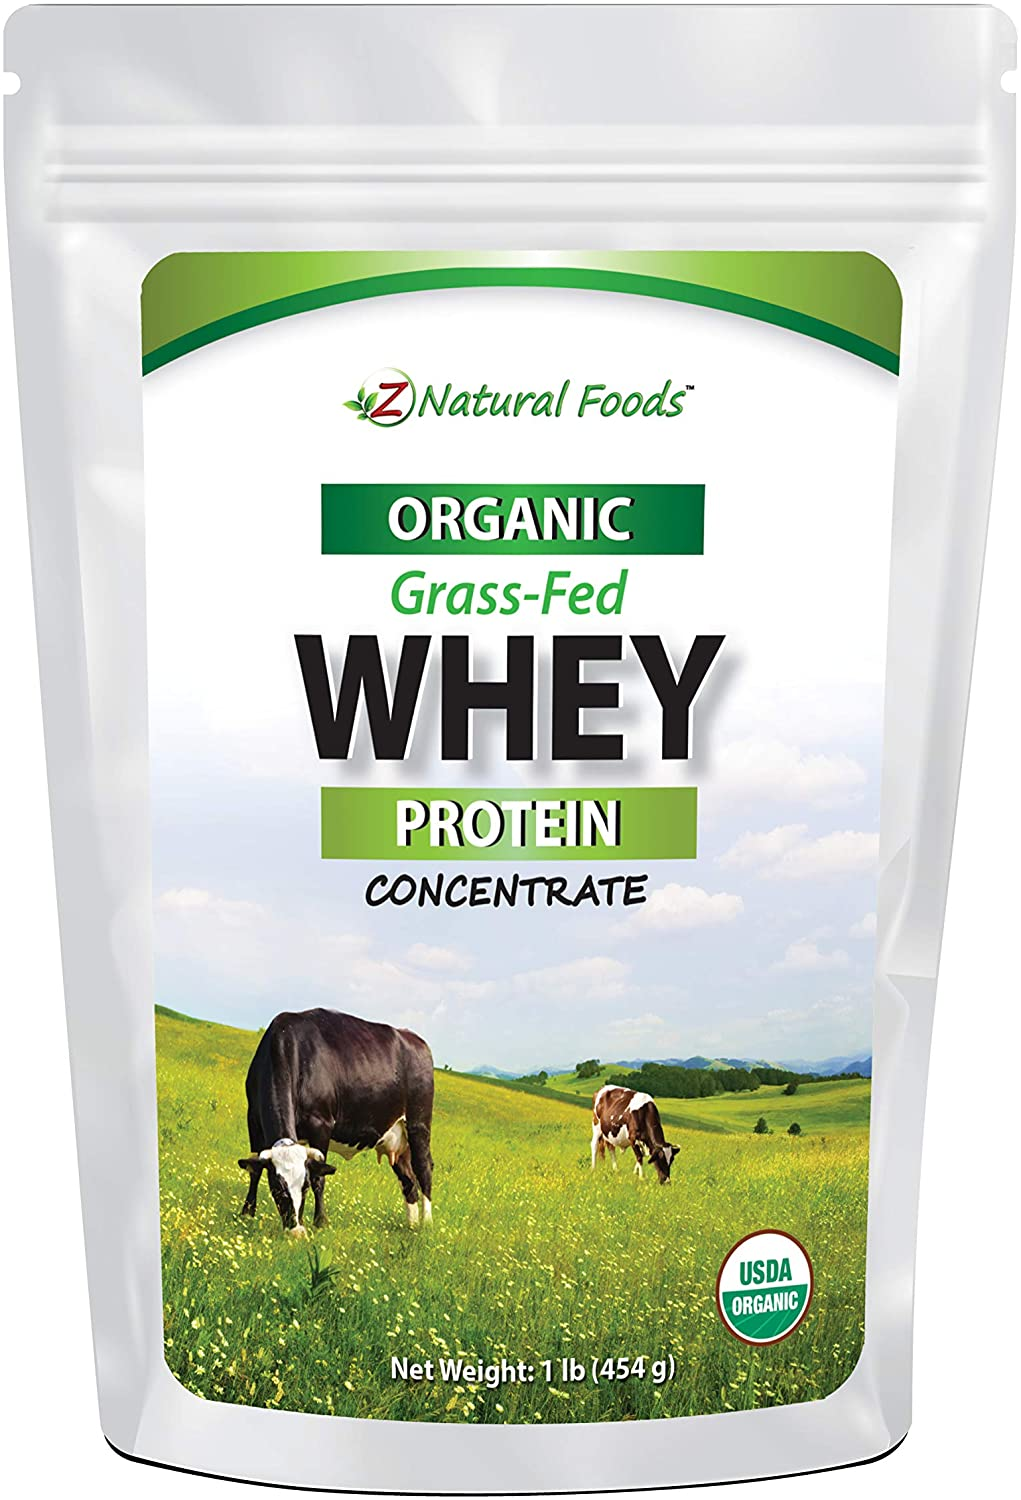 Z Natural Foods Pasture-Raised Goat Whey